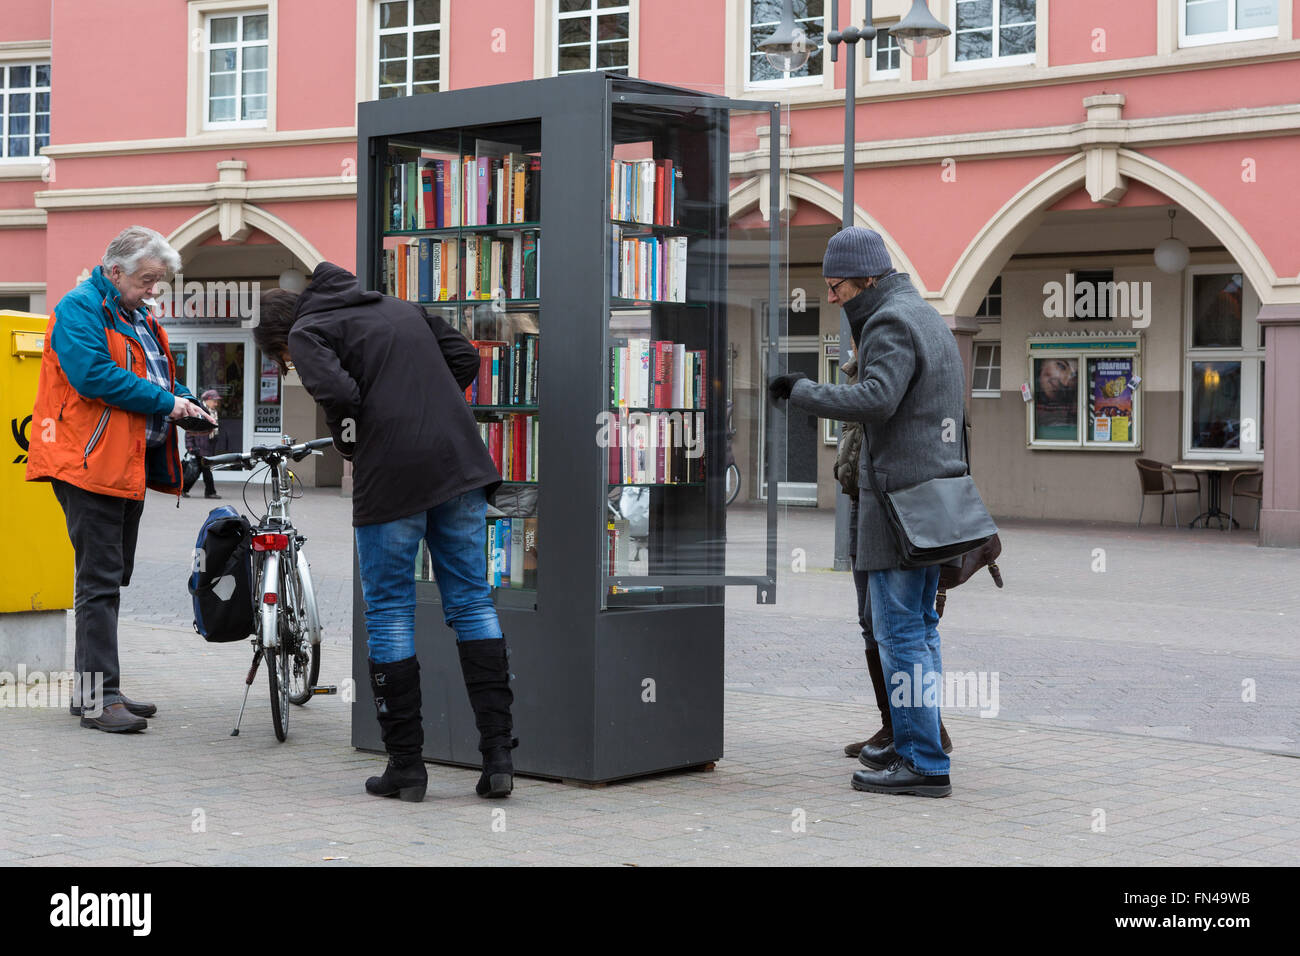 Members of the public peruse a street library in Gütersloh, NRW, Germany - Stock Image